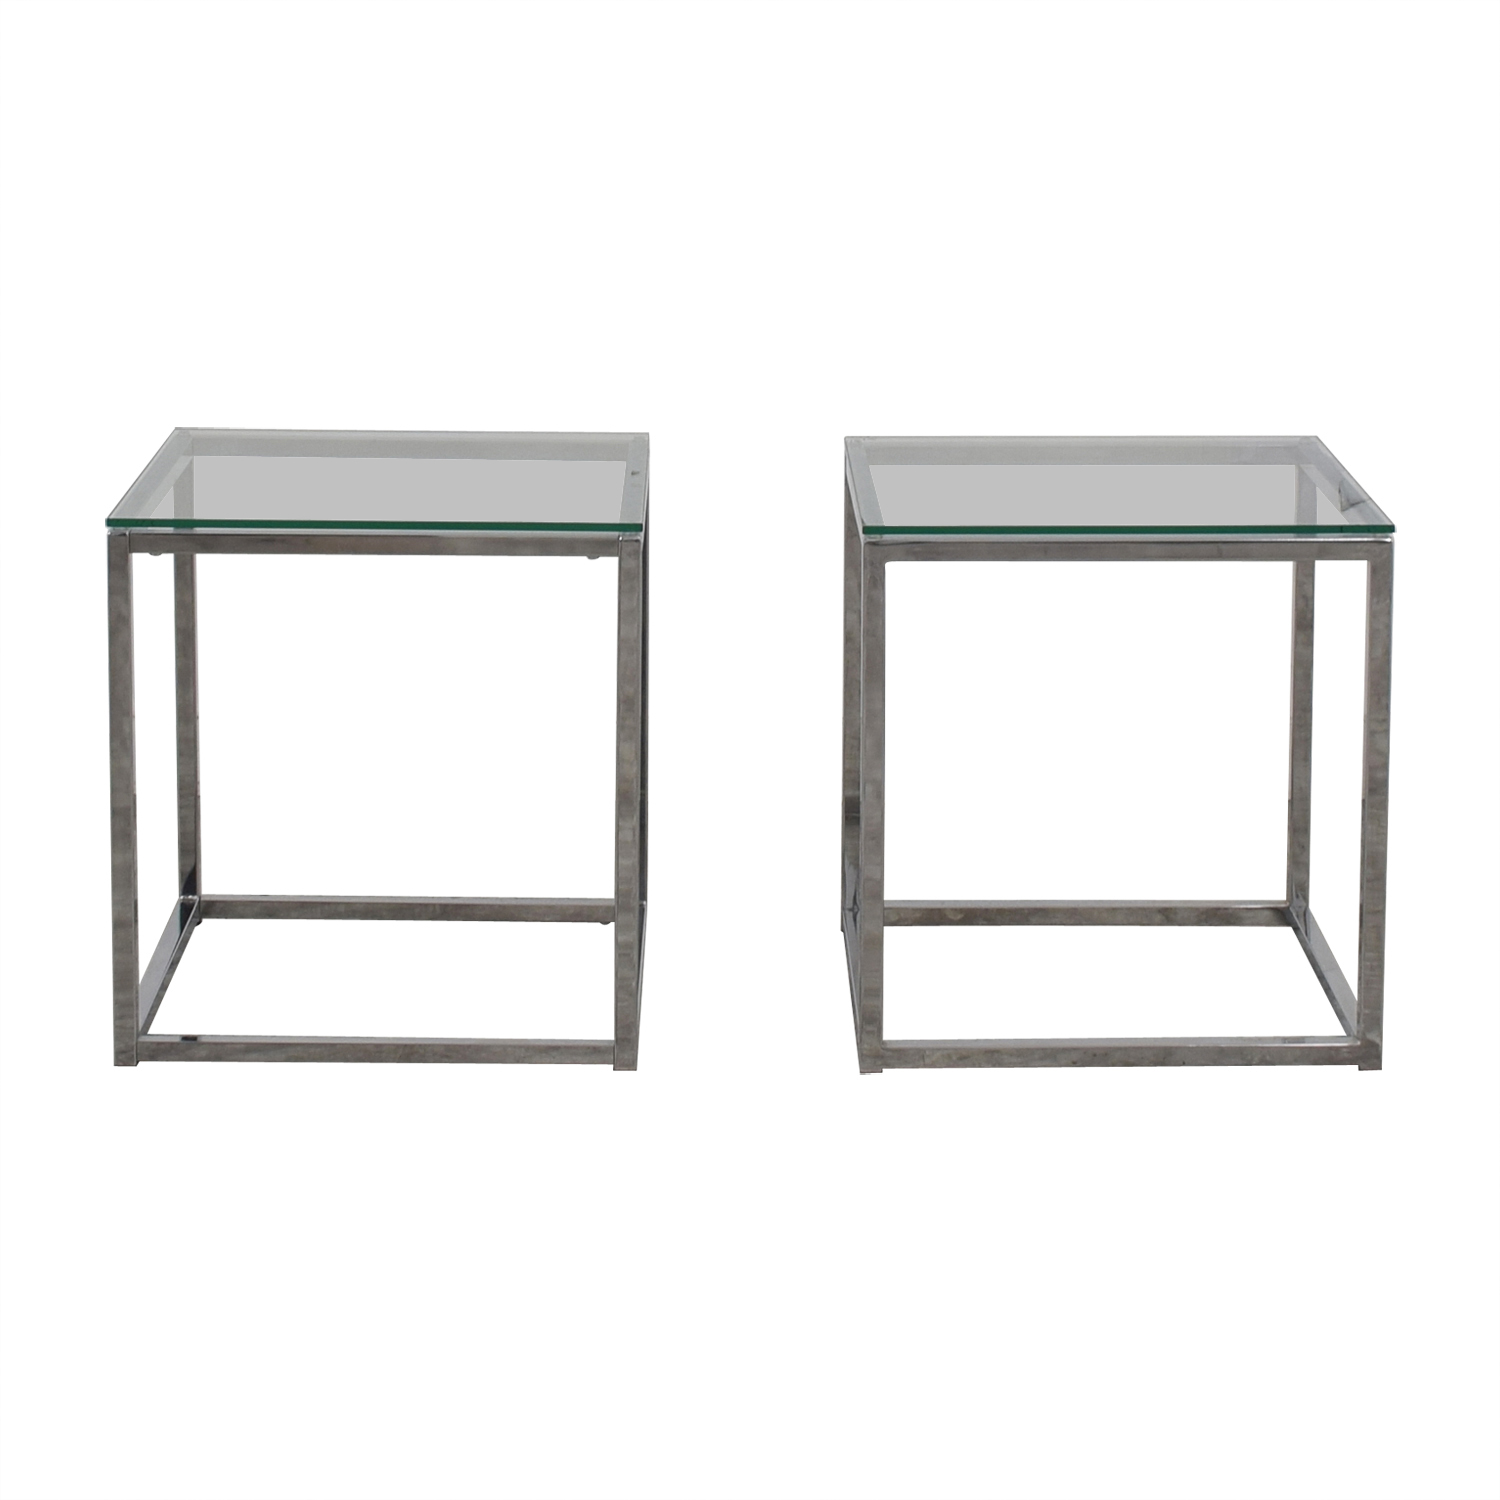 63 Off Cb2 Cb2 Glass Side Tables Tables